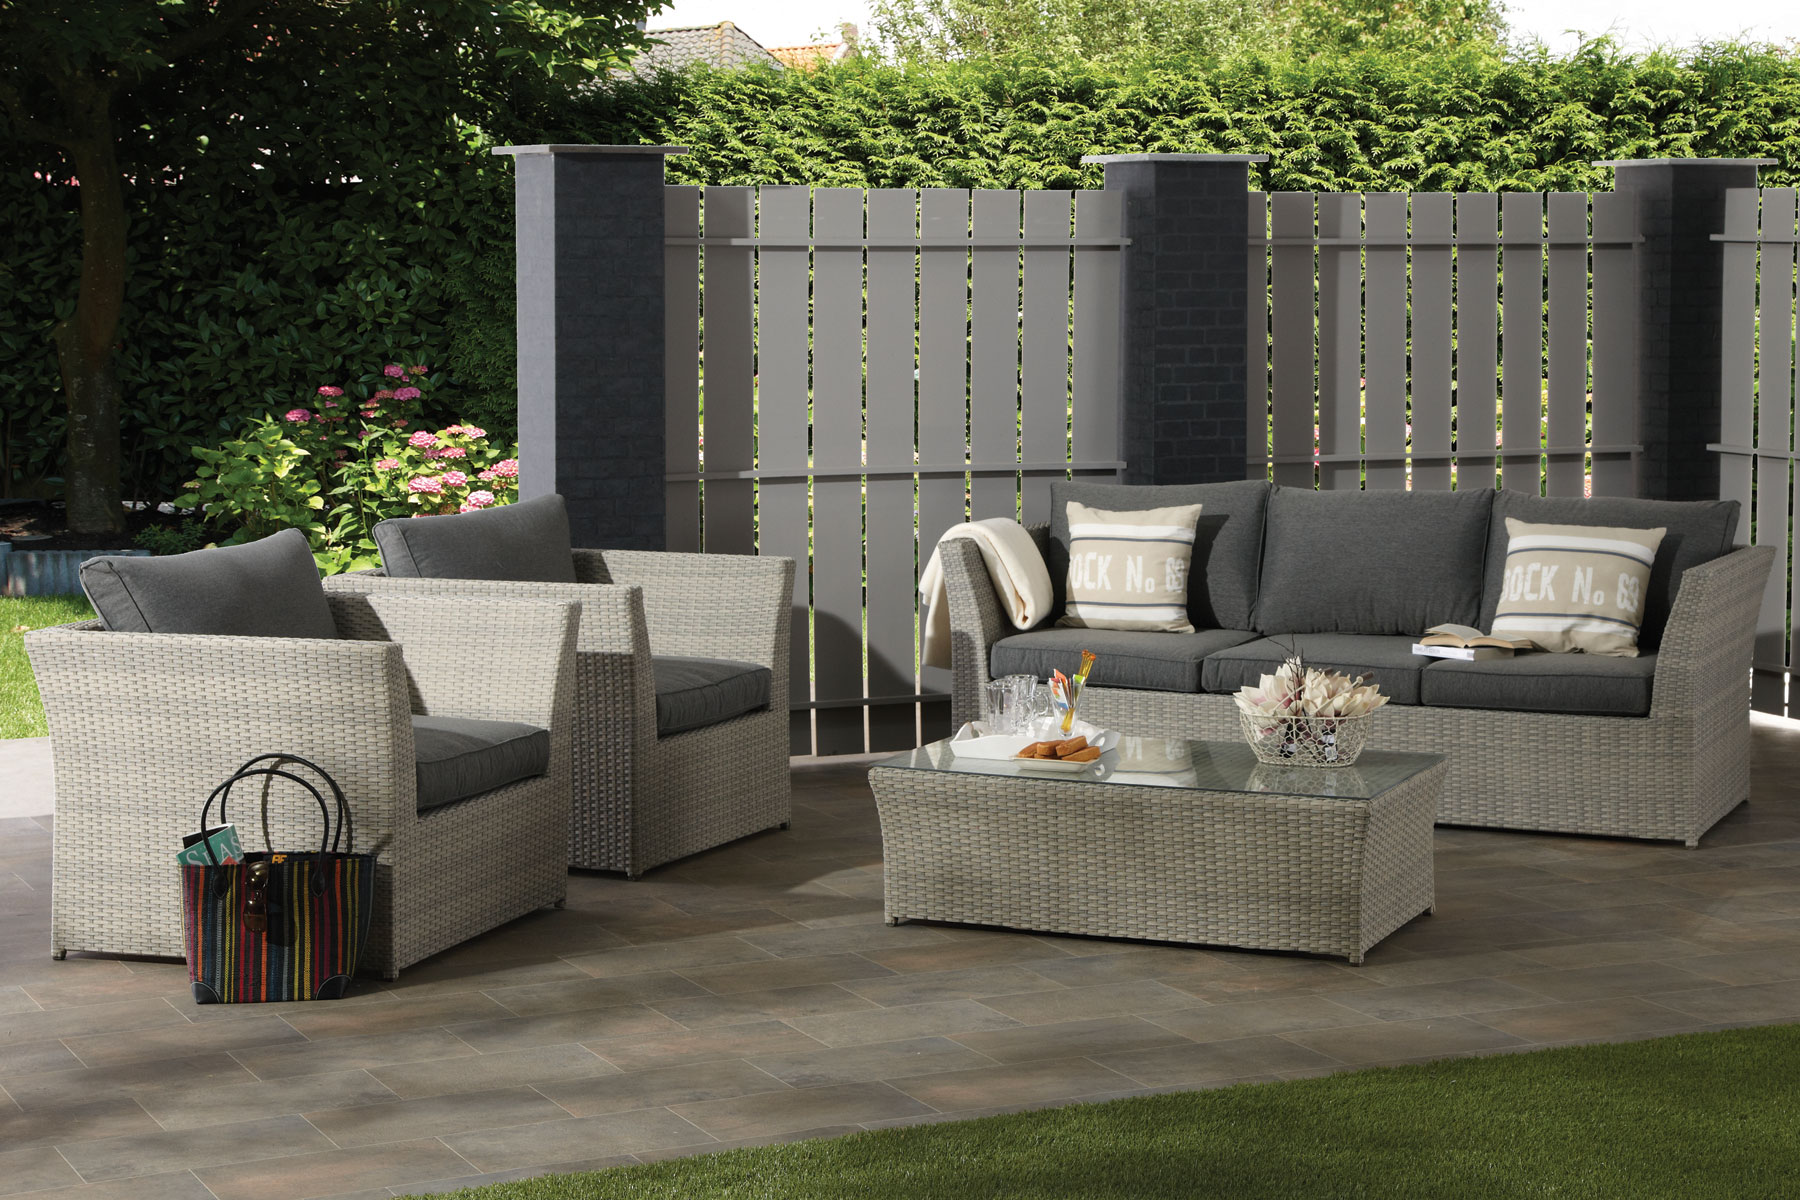 gartenm bel und outdoorm bel in bester qualit t bei. Black Bedroom Furniture Sets. Home Design Ideas